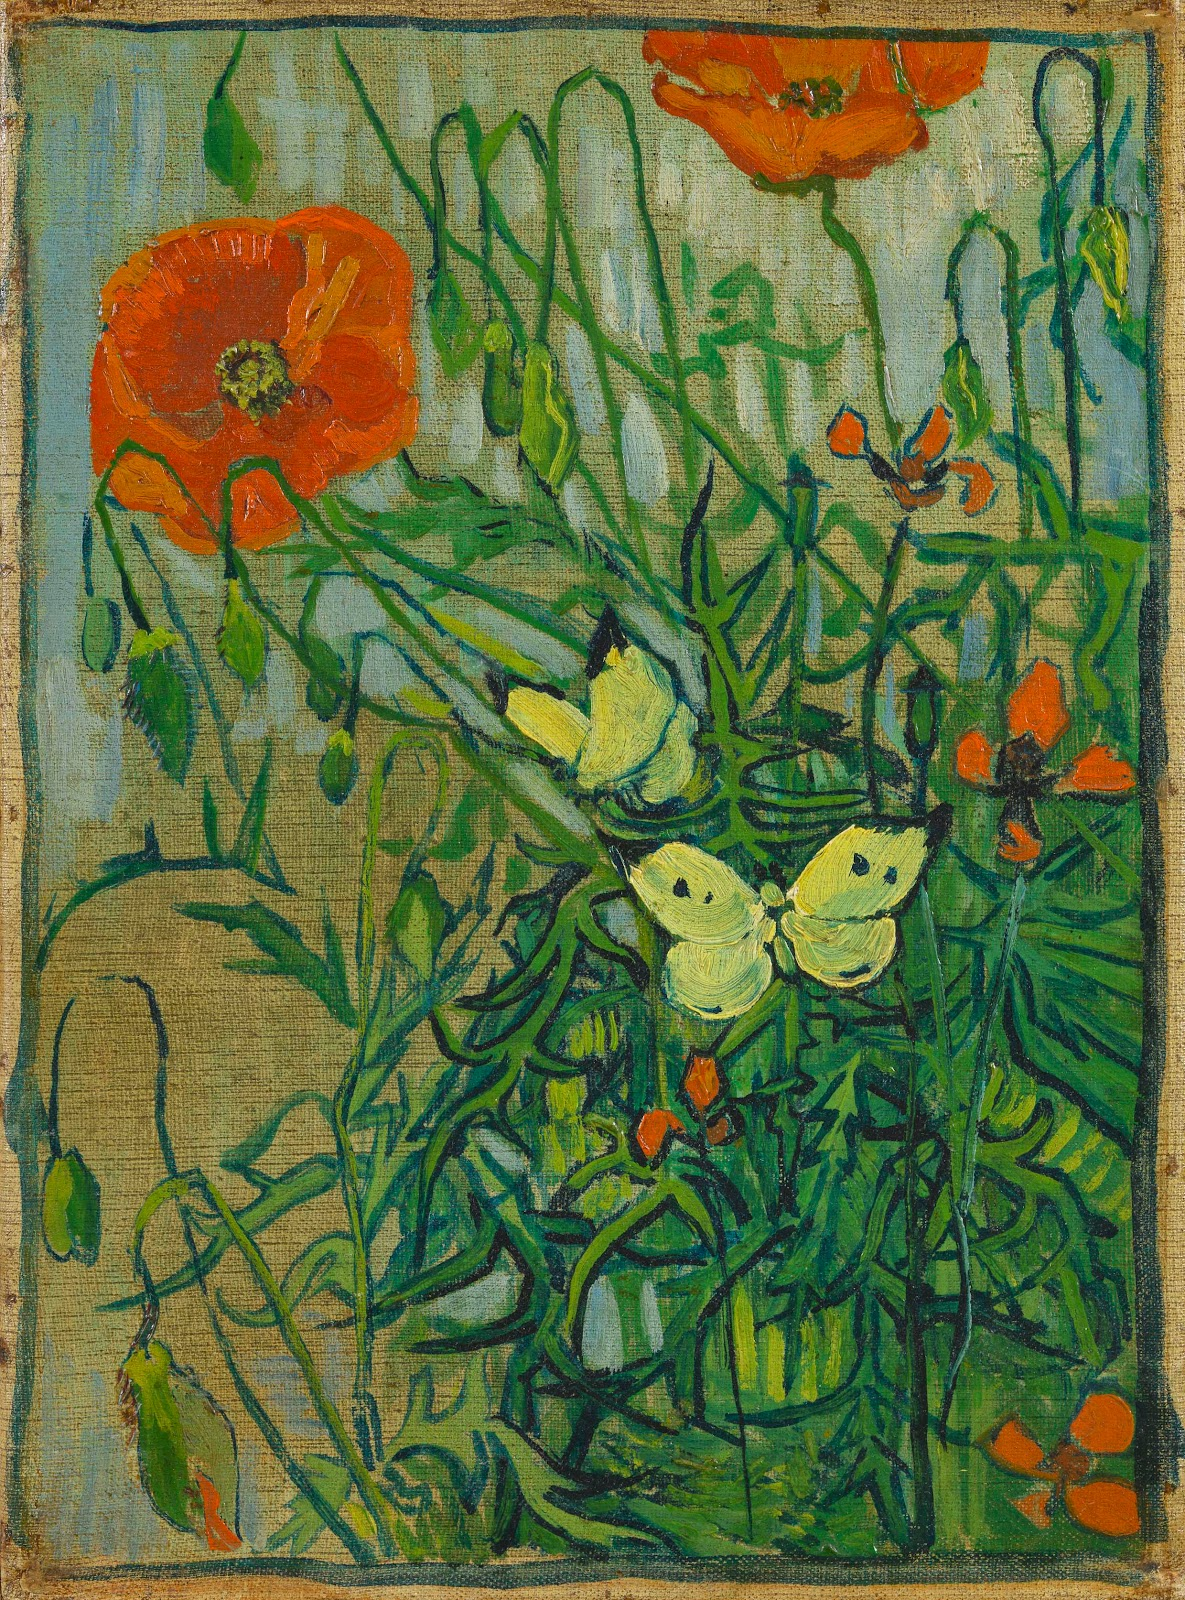 Cuadros De Vango Art History News Van Gogh And Nature To Open At The Clark